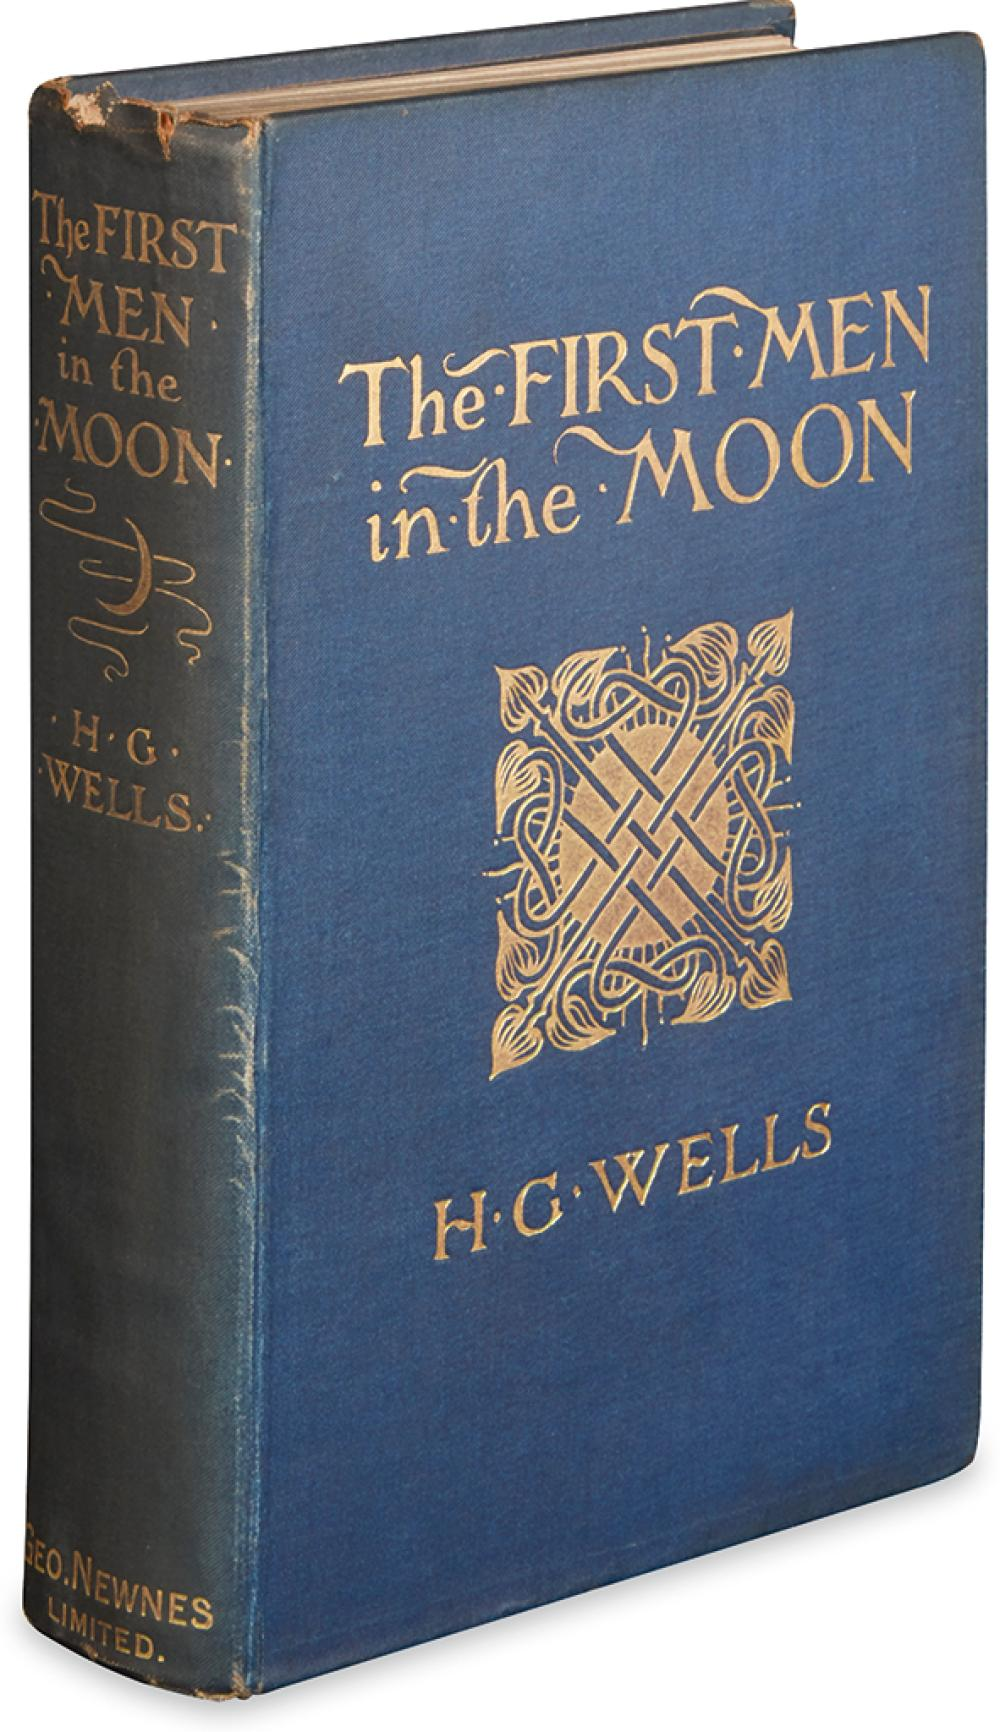 WELLS, H.G. First Men in the Moon.